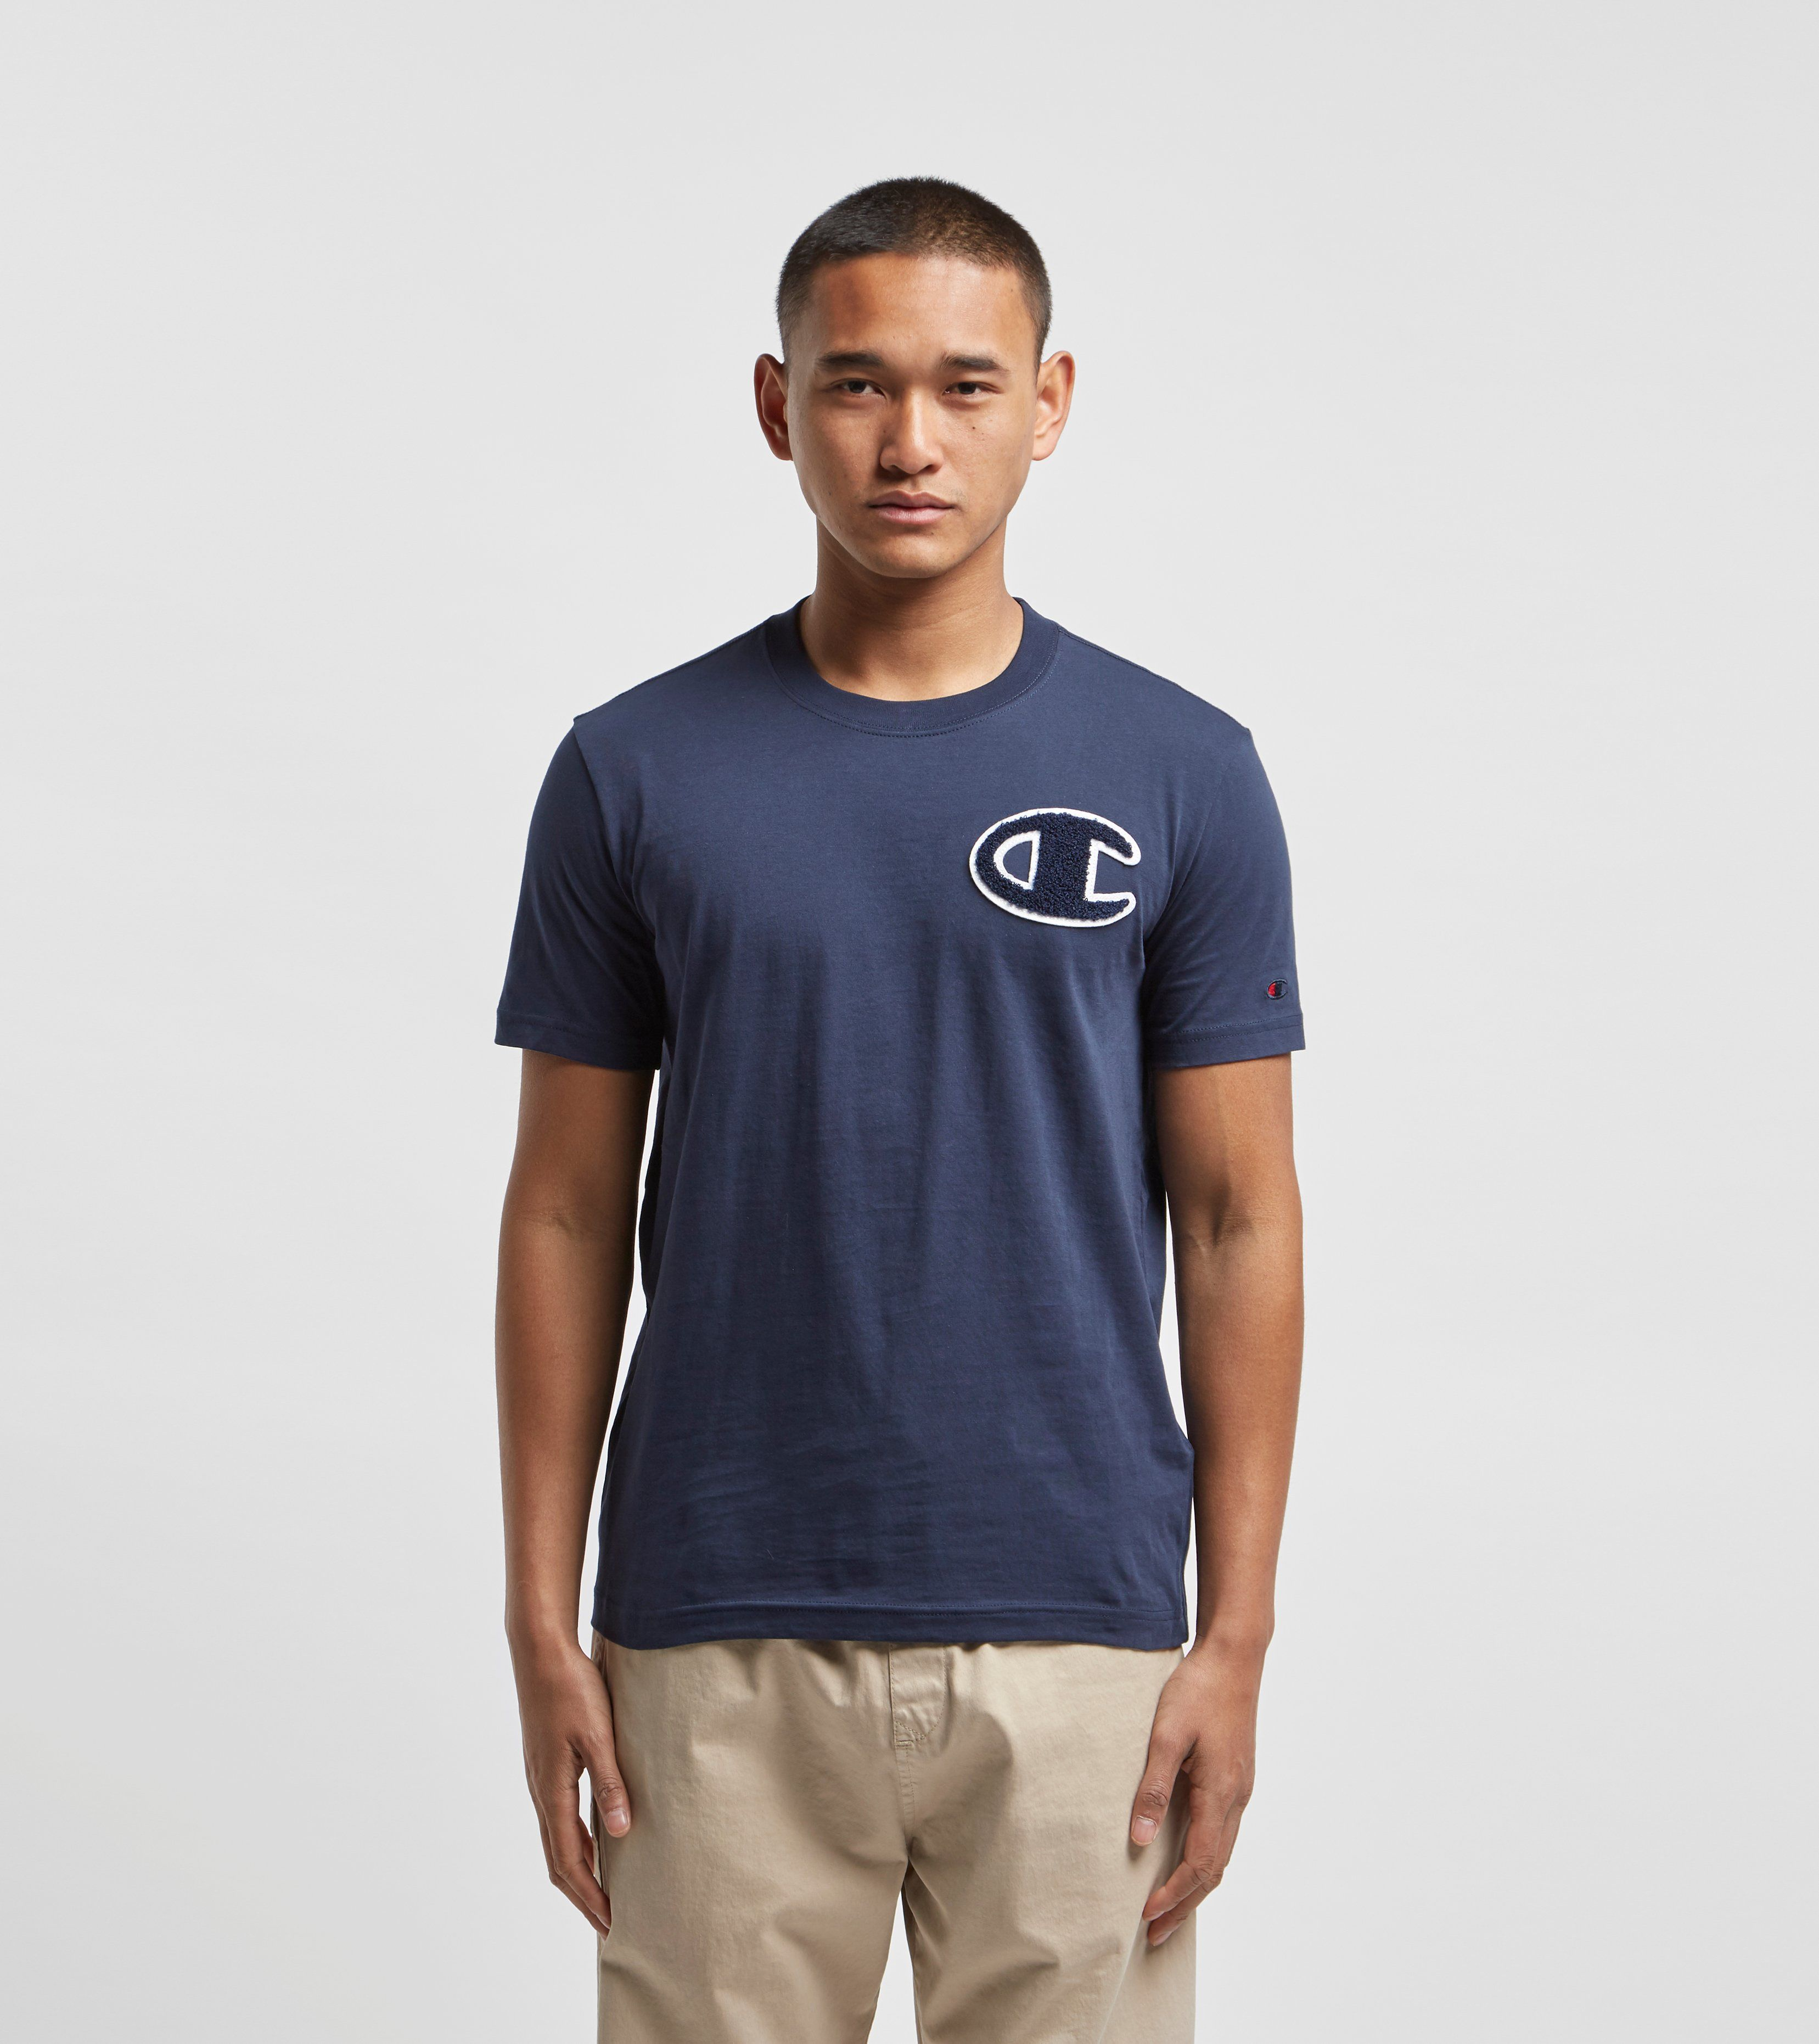 Champion Outline T-shirt